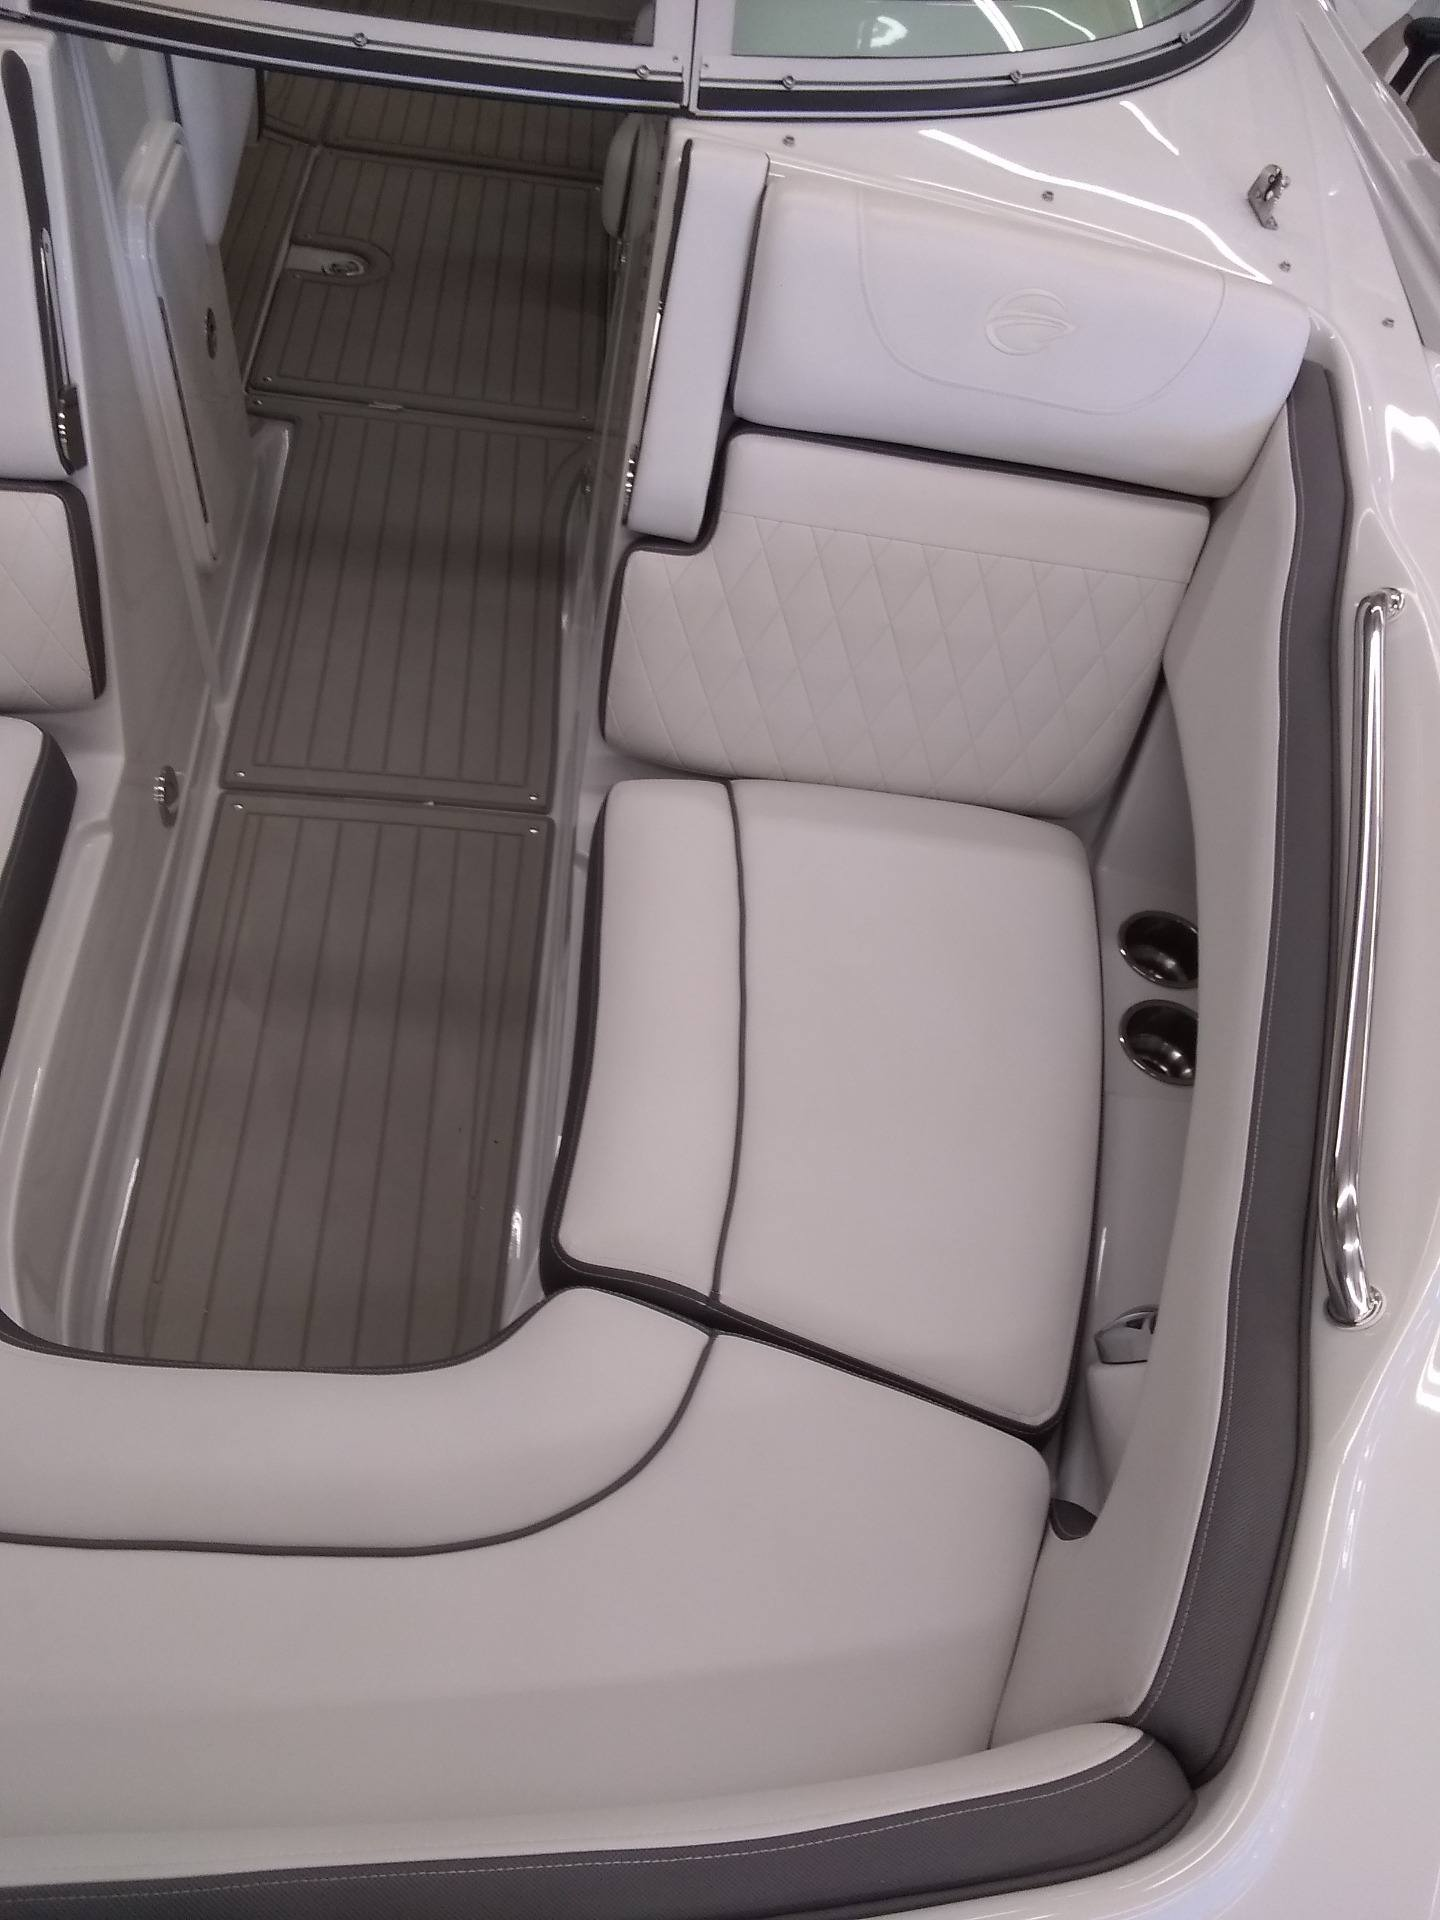 2020 Crownline Eclipse E235 in Sterling, Colorado - Photo 19